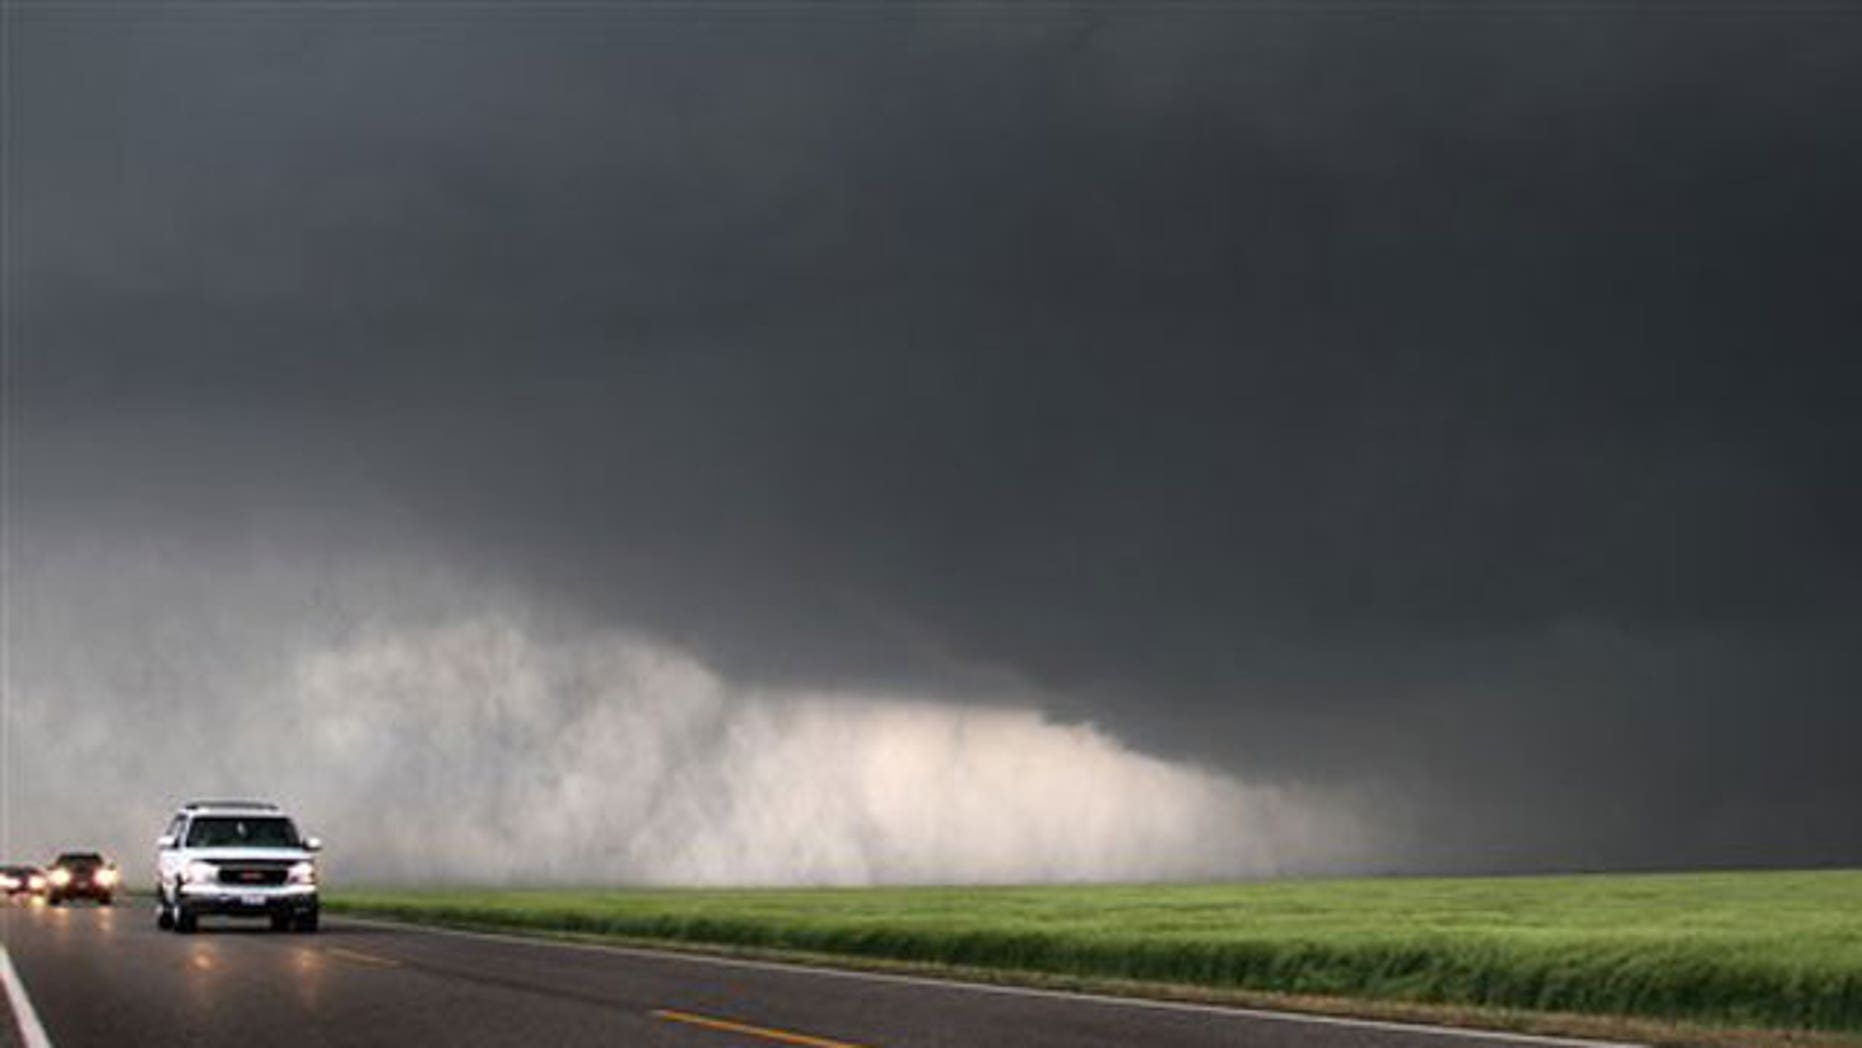 May 10: a super cell storm gains strength as it moves Northeast six miles from Wakita, Okla.